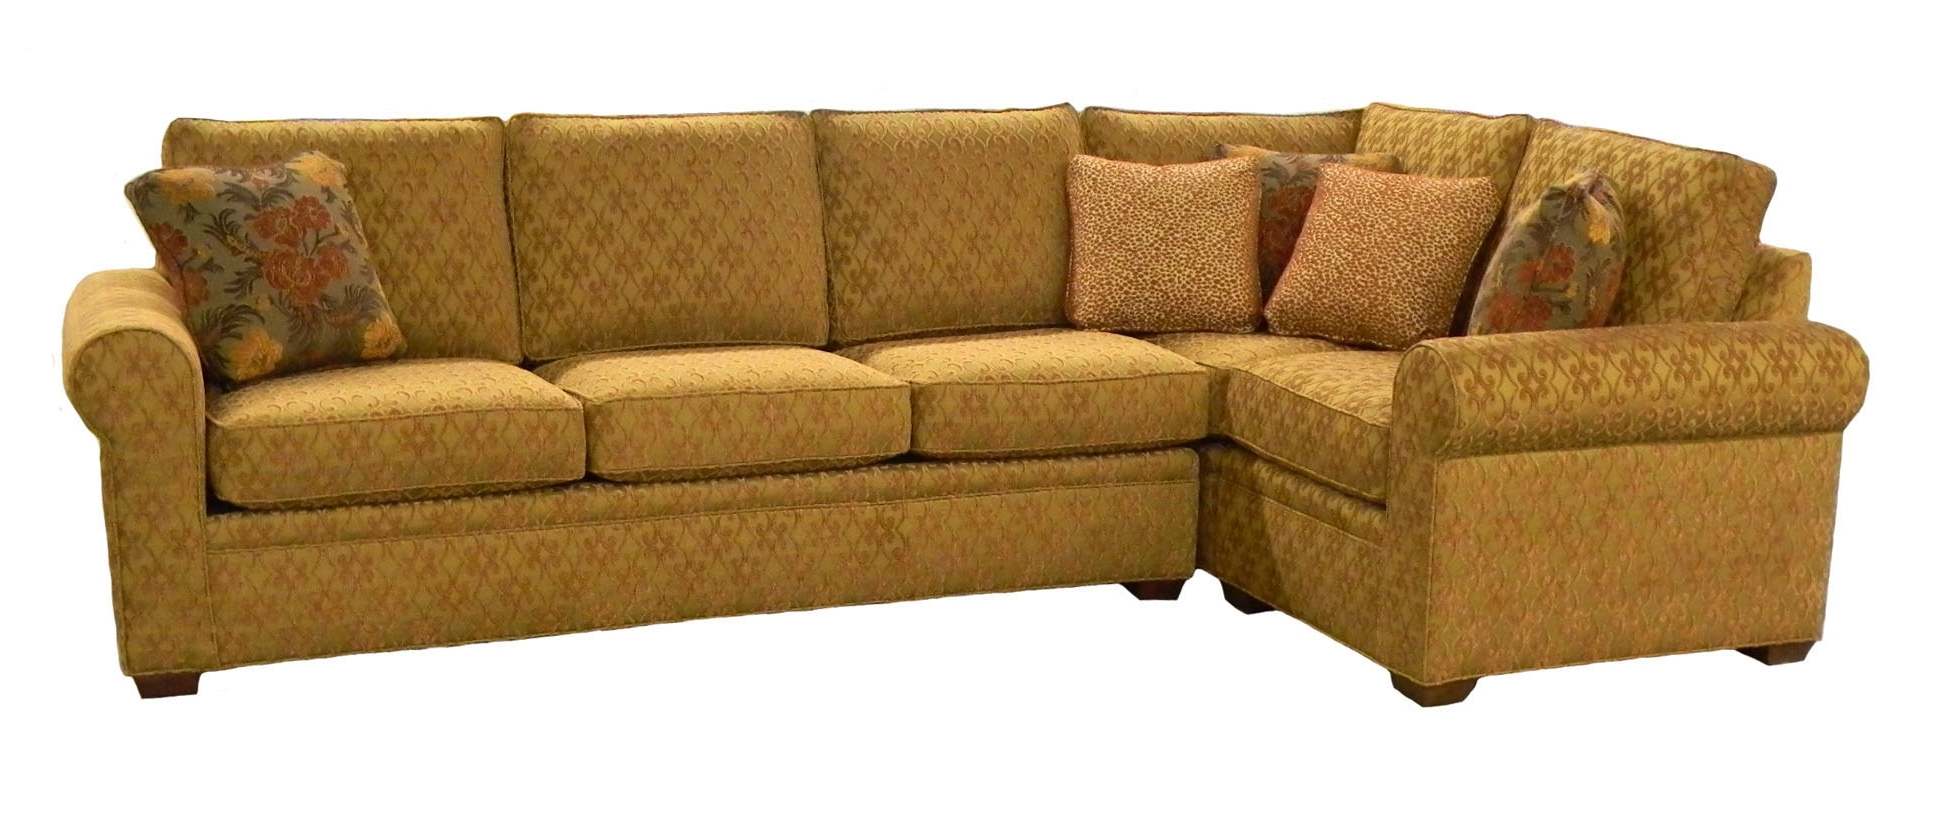 Made In North Carolina Sectional Sofas Throughout Famous Photos Examples Custom Sectional Sofas Carolina Chair Furniture (View 5 of 15)